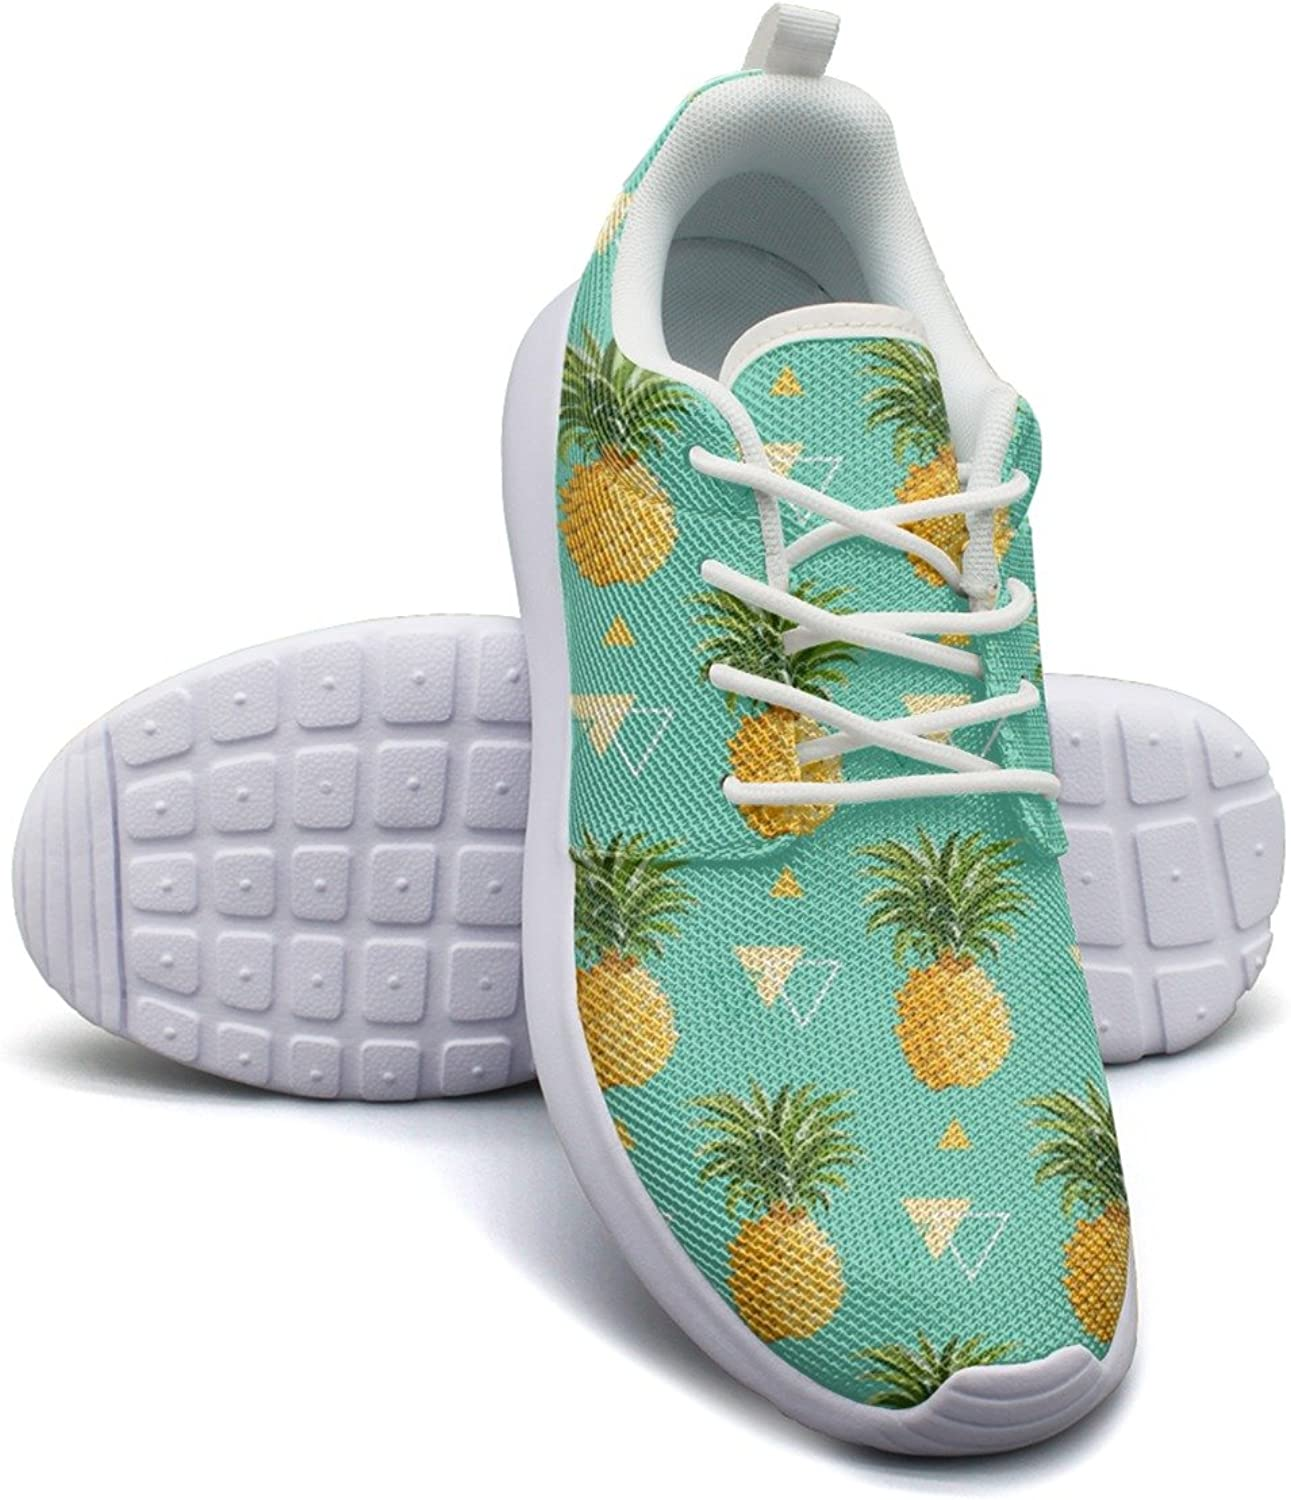 Geometric Pineapple Background Women's Fashion Tennis shoes Casual Mesh Lightweight Athletic Sneakers